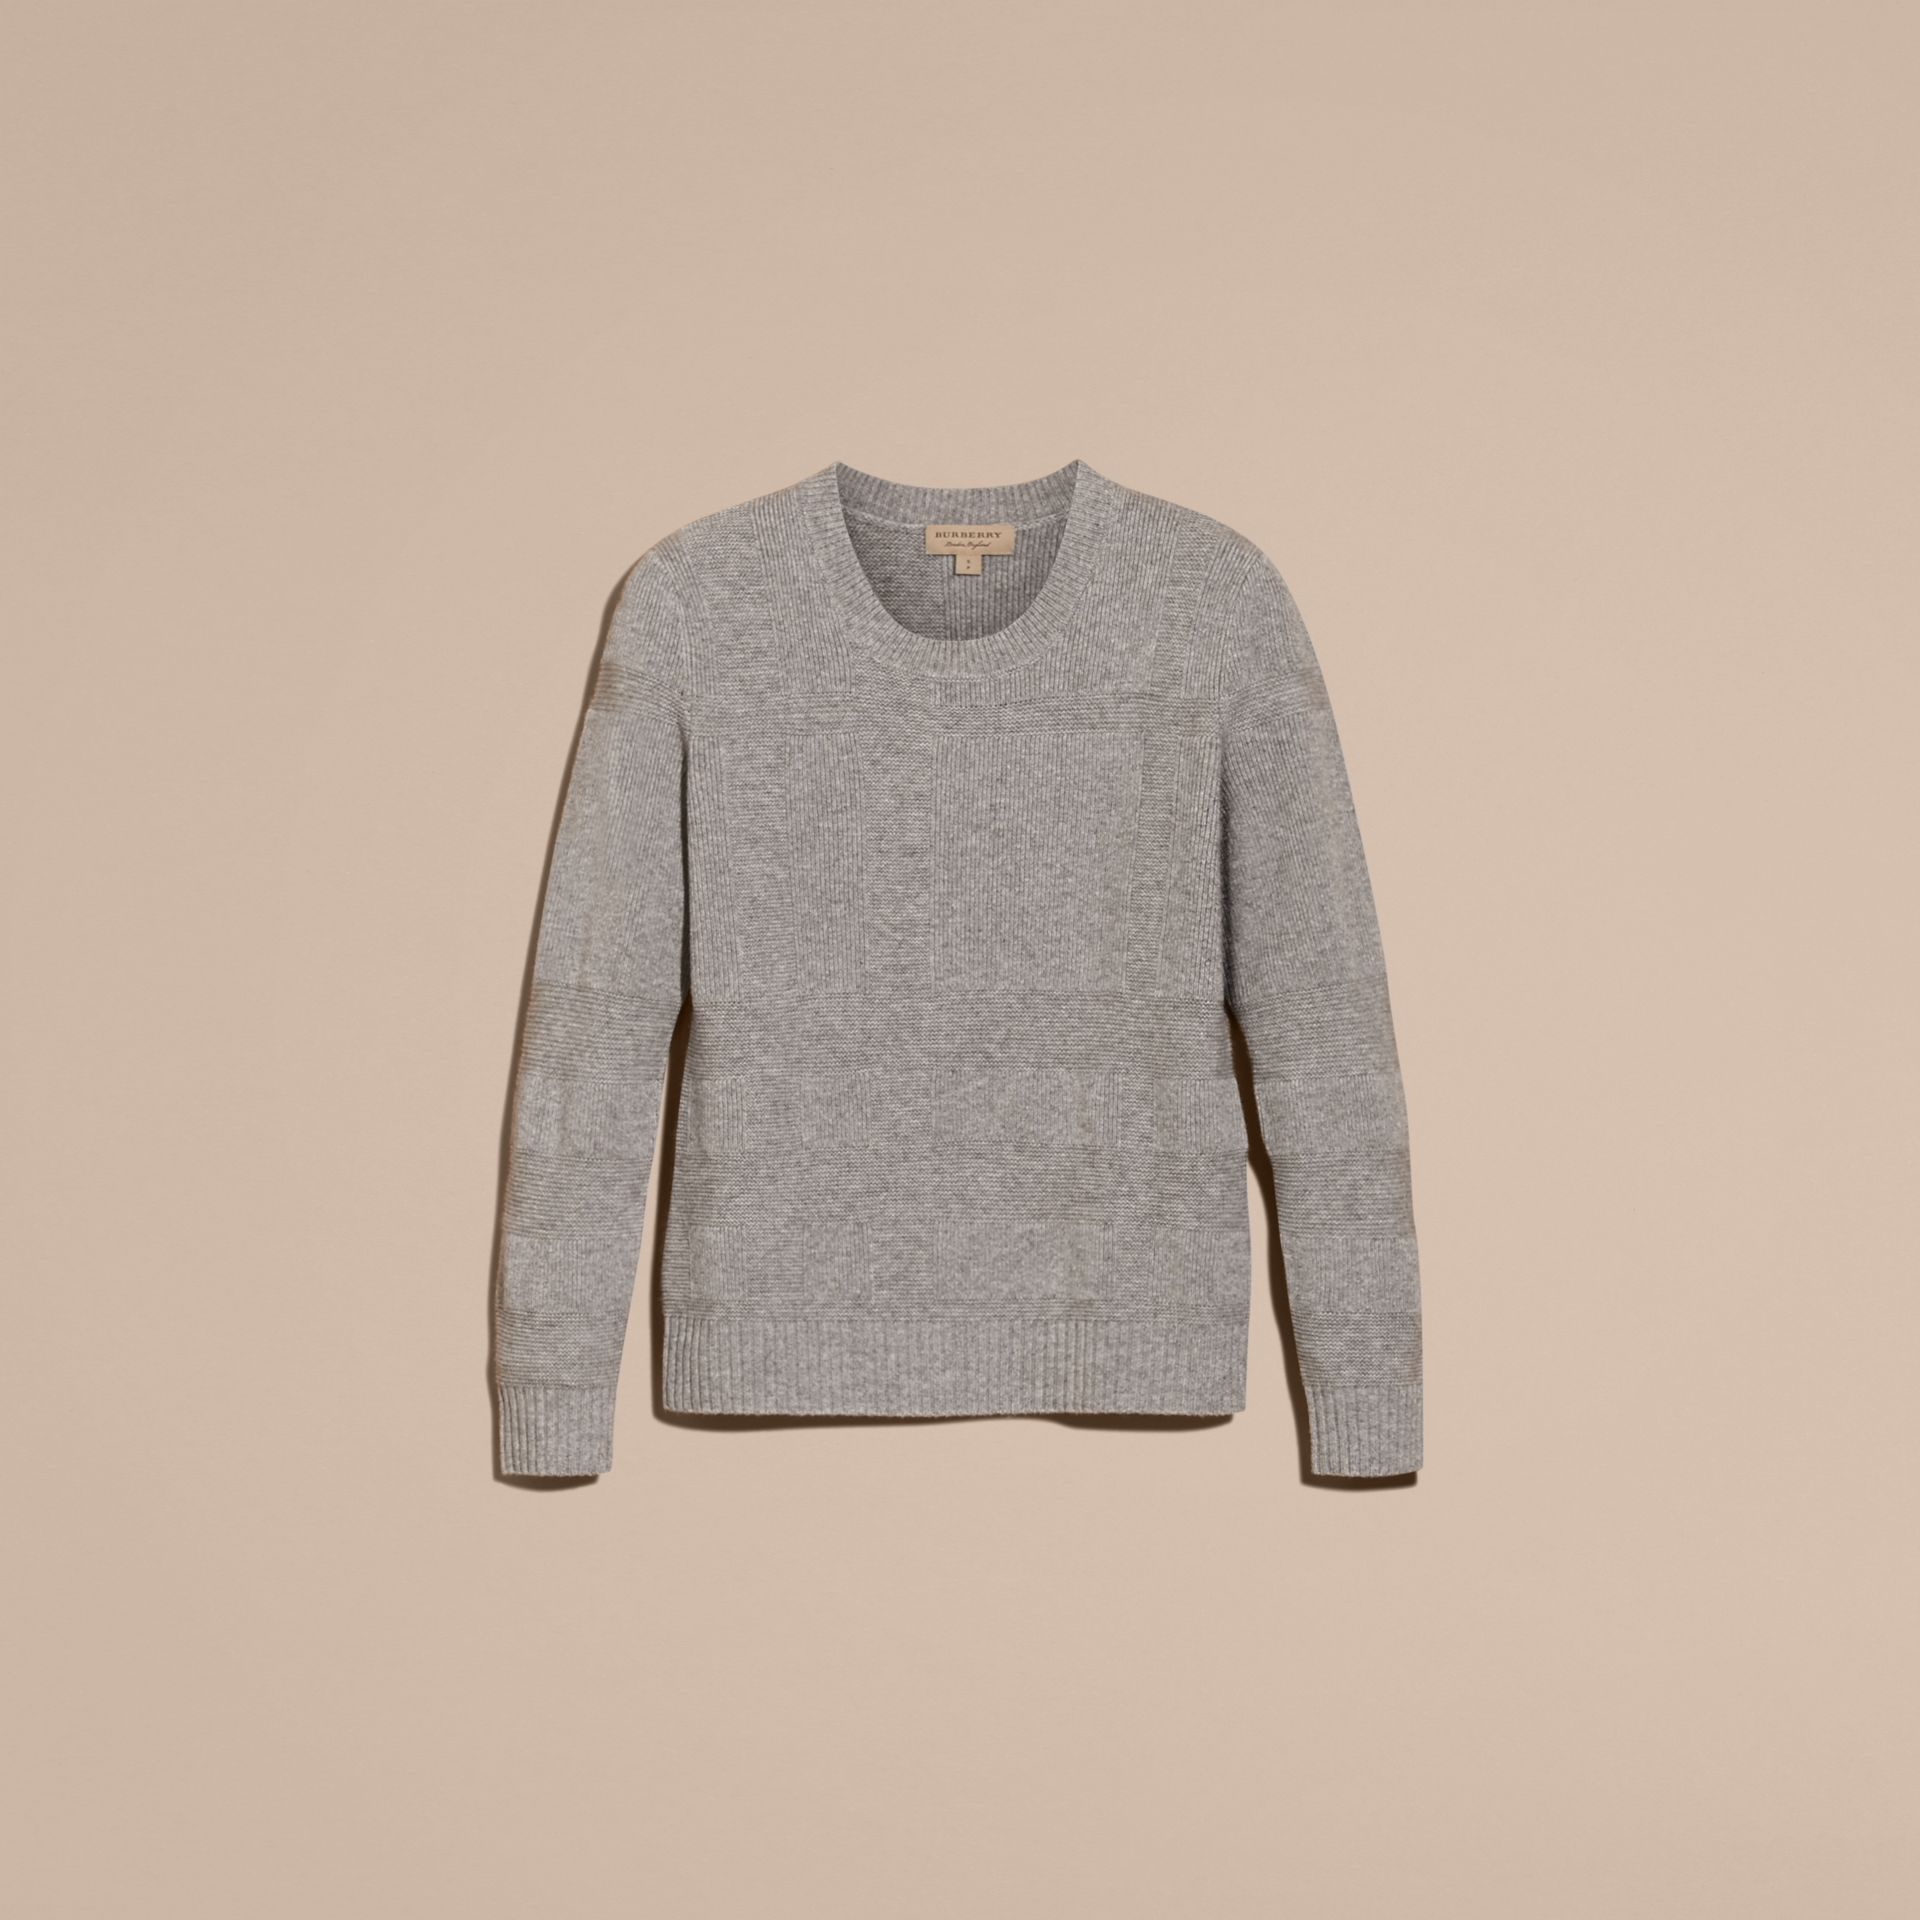 Light grey melange Check-knit Wool Cashmere Sweater Light Grey Melange - gallery image 4